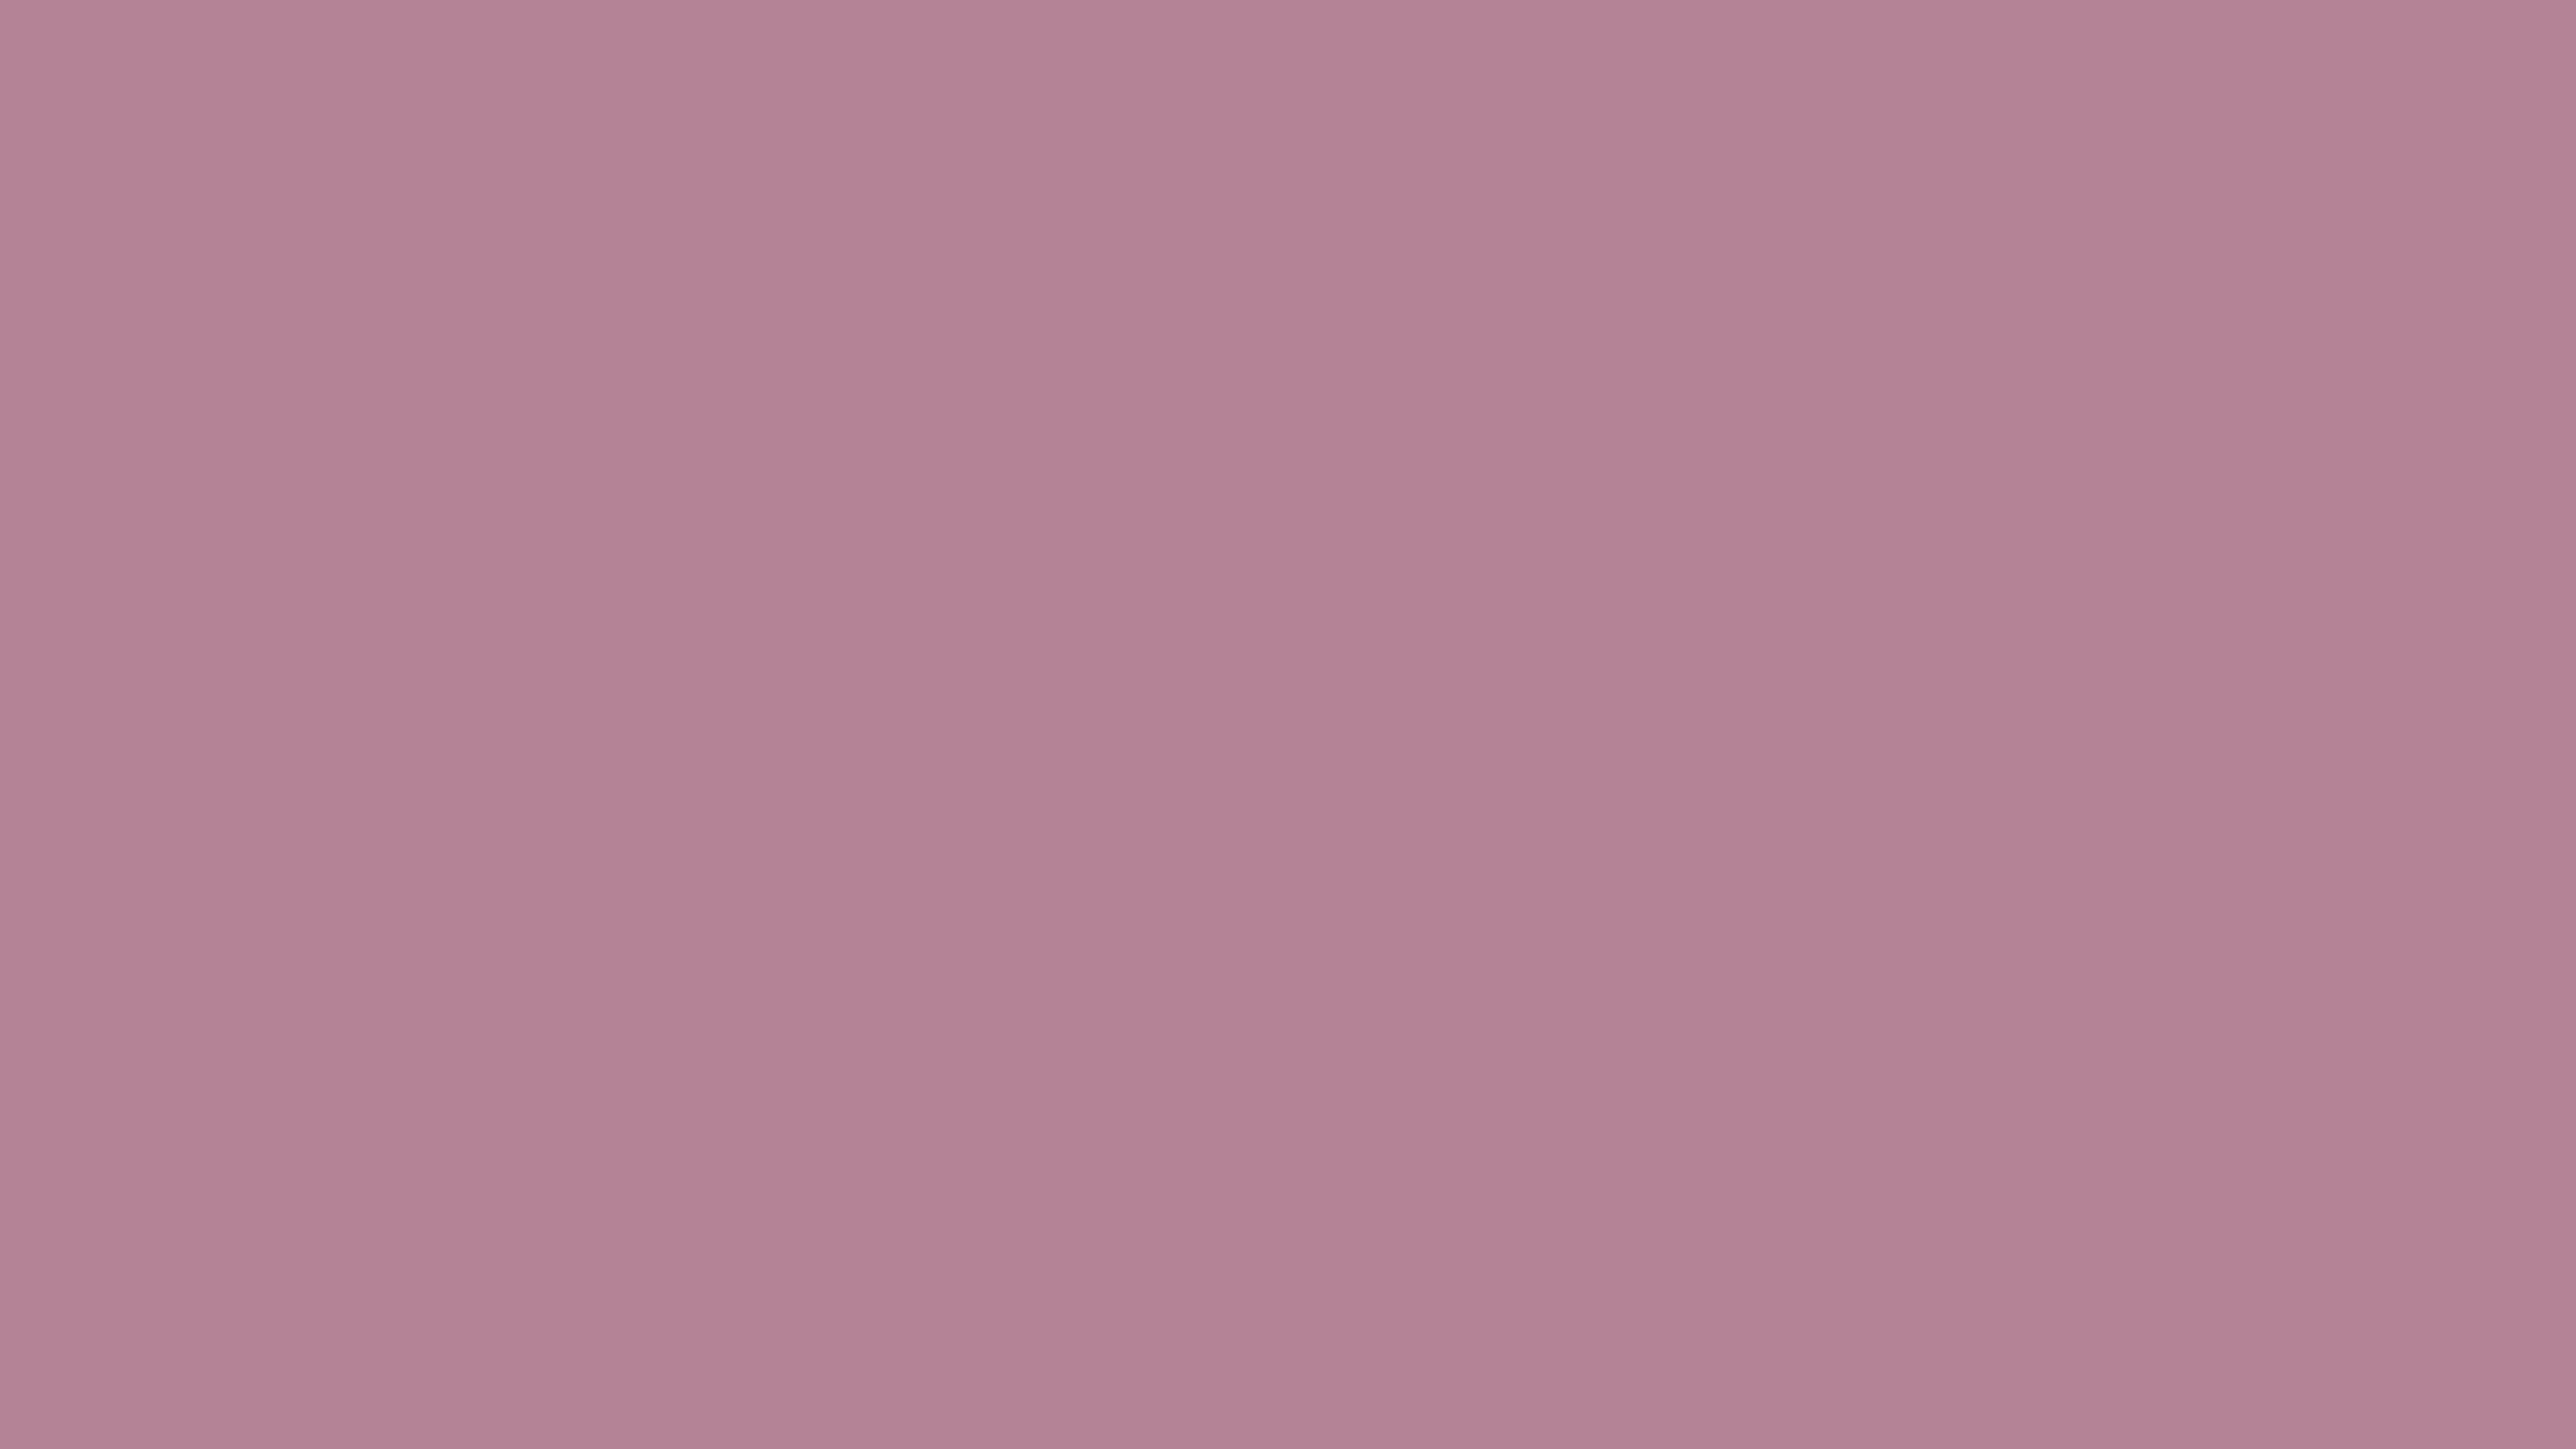 3840x2160 English Lavender Solid Color Background